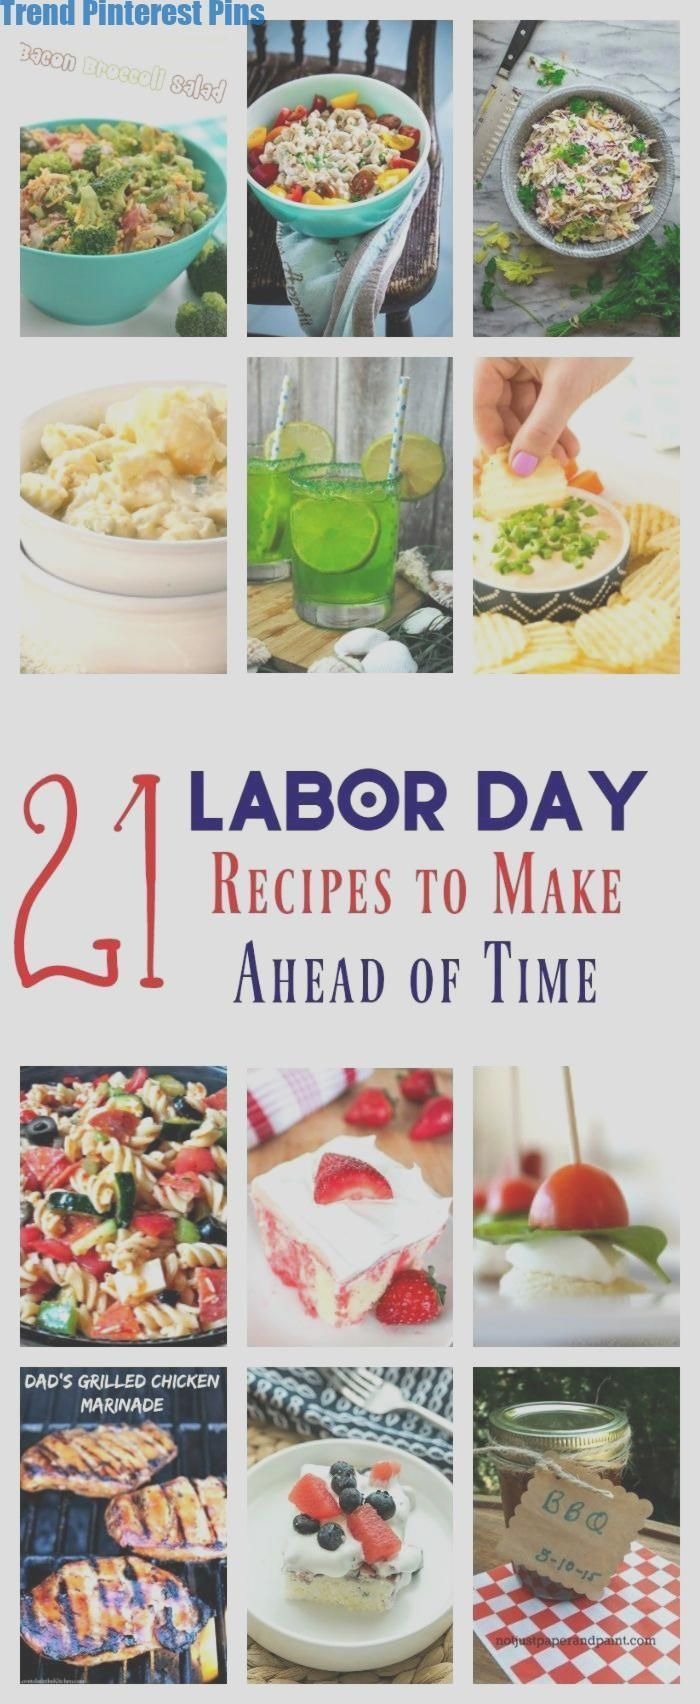 21 Labor Day Recipes to Make Ahead of Time #laborday #labordaydesserts 21 Labor Day Recipes to Make Ahead of Time #laborday #labordaydesserts 21 Labor Day Recipes to Make Ahead of Time #laborday #labordaydesserts 21 Labor Day Recipes to Make Ahead of Time #laborday #labordaydesserts 21 Labor Day Recipes to Make Ahead of Time #laborday #labordaydesserts 21 Labor Day Recipes to Make Ahead of Time #laborday #labordaydesserts 21 Labor Day Recipes to Make Ahead of Time #laborday #labordaydesserts 21 #labordaydesserts